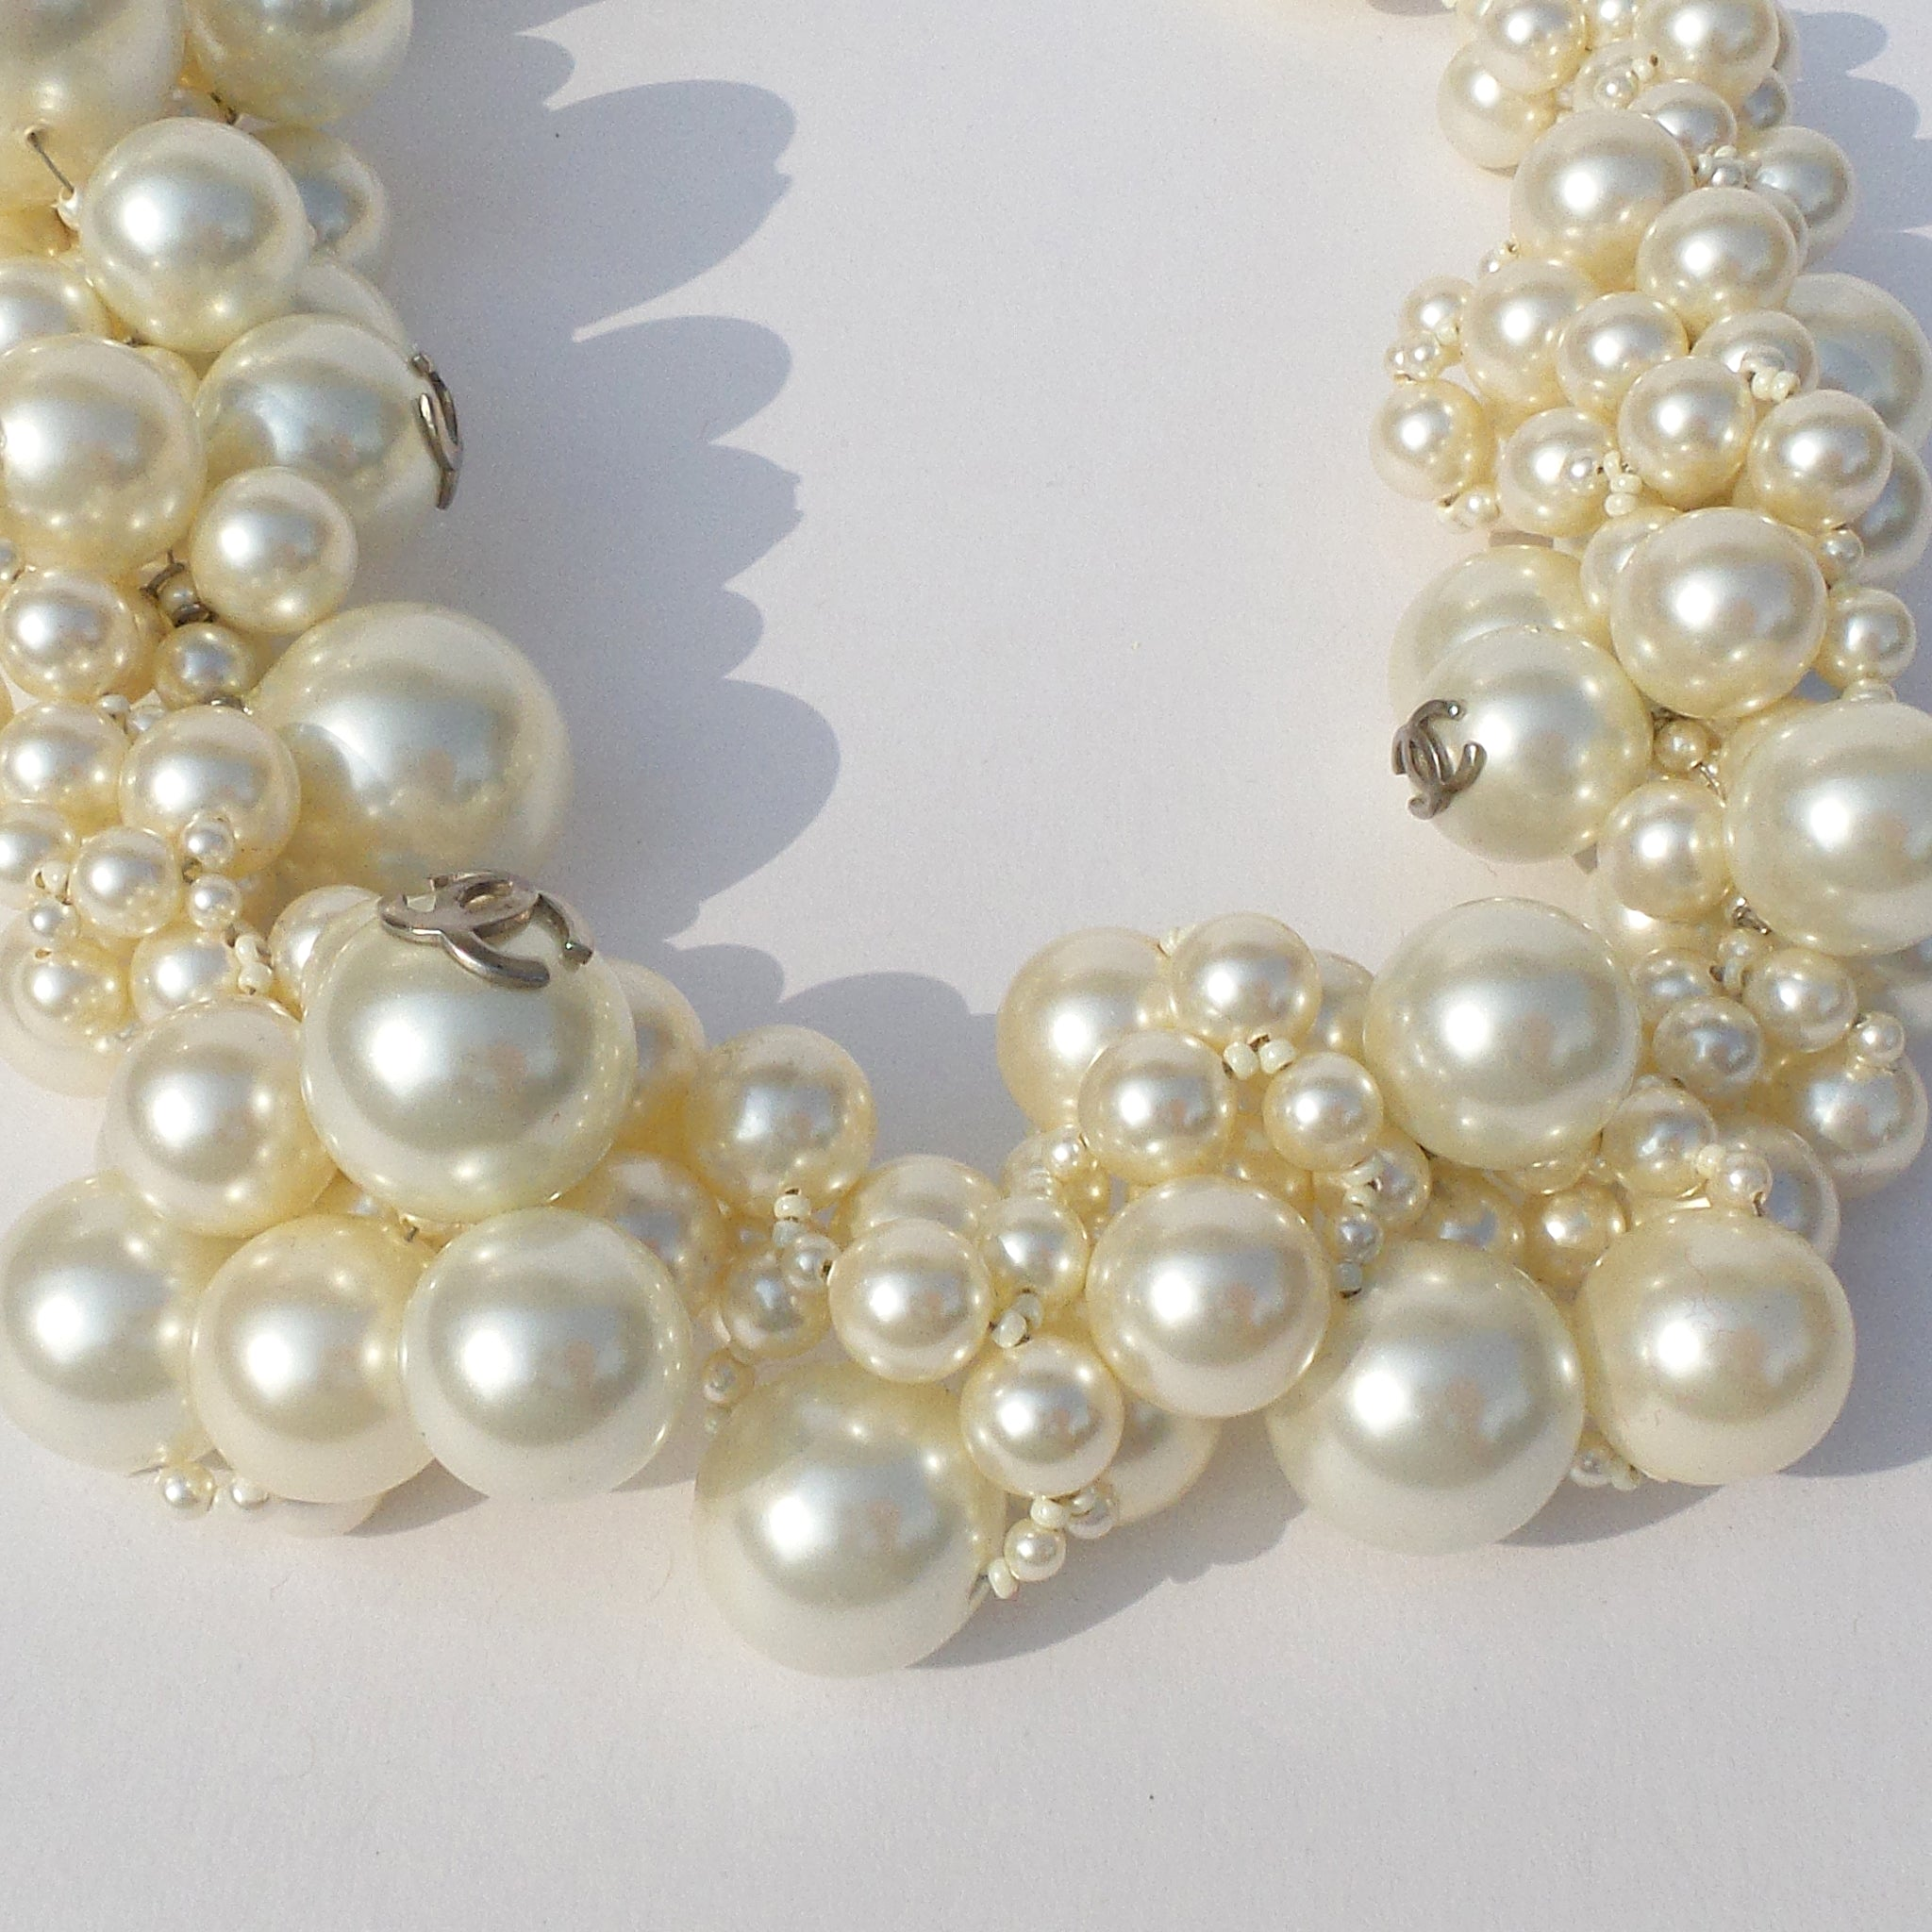 CHANEL 13S Cream Faux Pearl Choker 5 Silver Tone CC Bubble Necklace